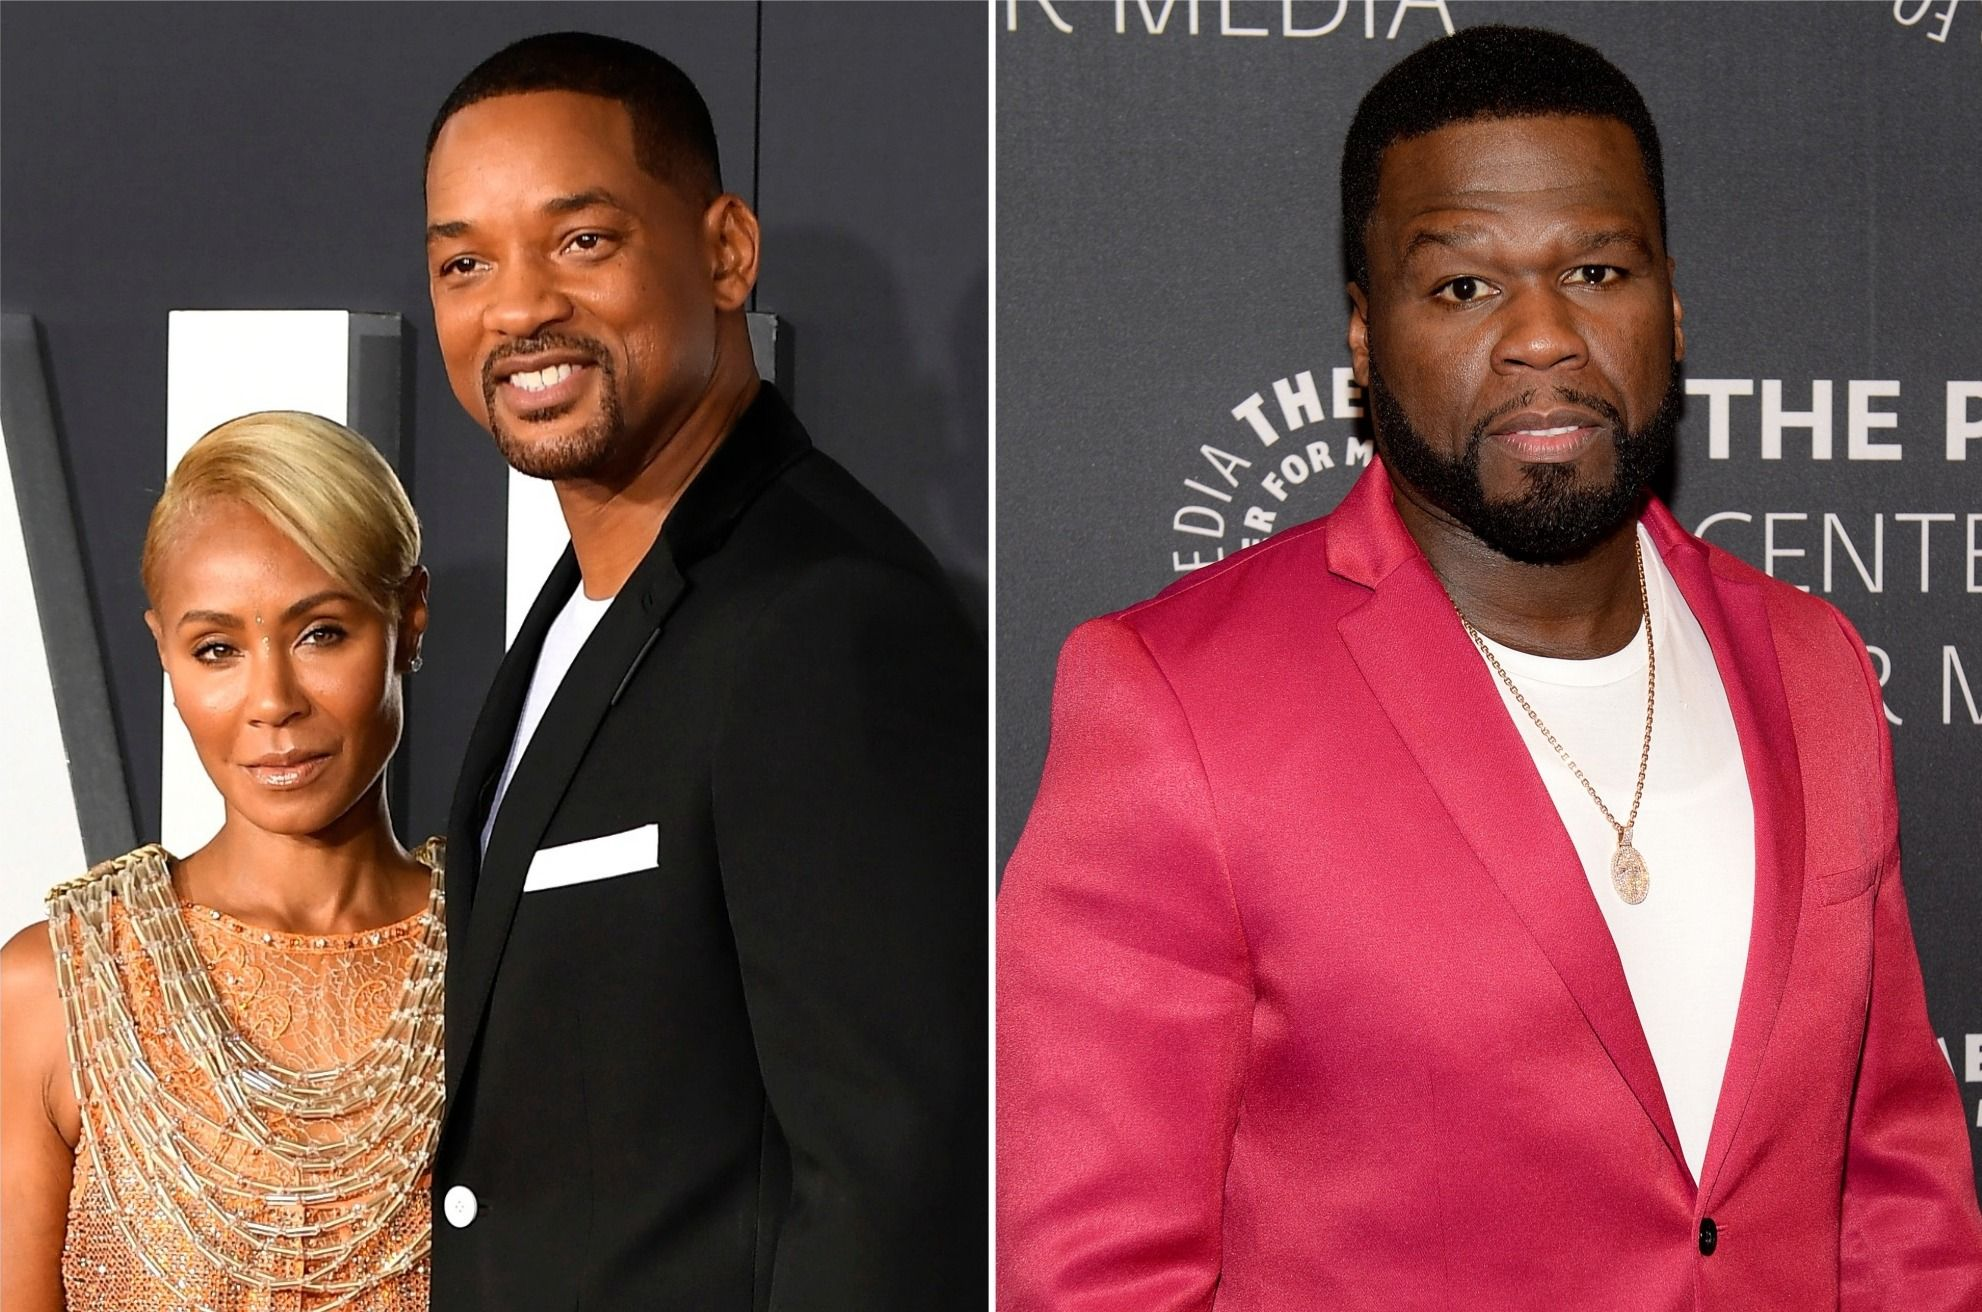 Jada Pinkett Smith and husband Will Smith (left) and 50 Cent (right)